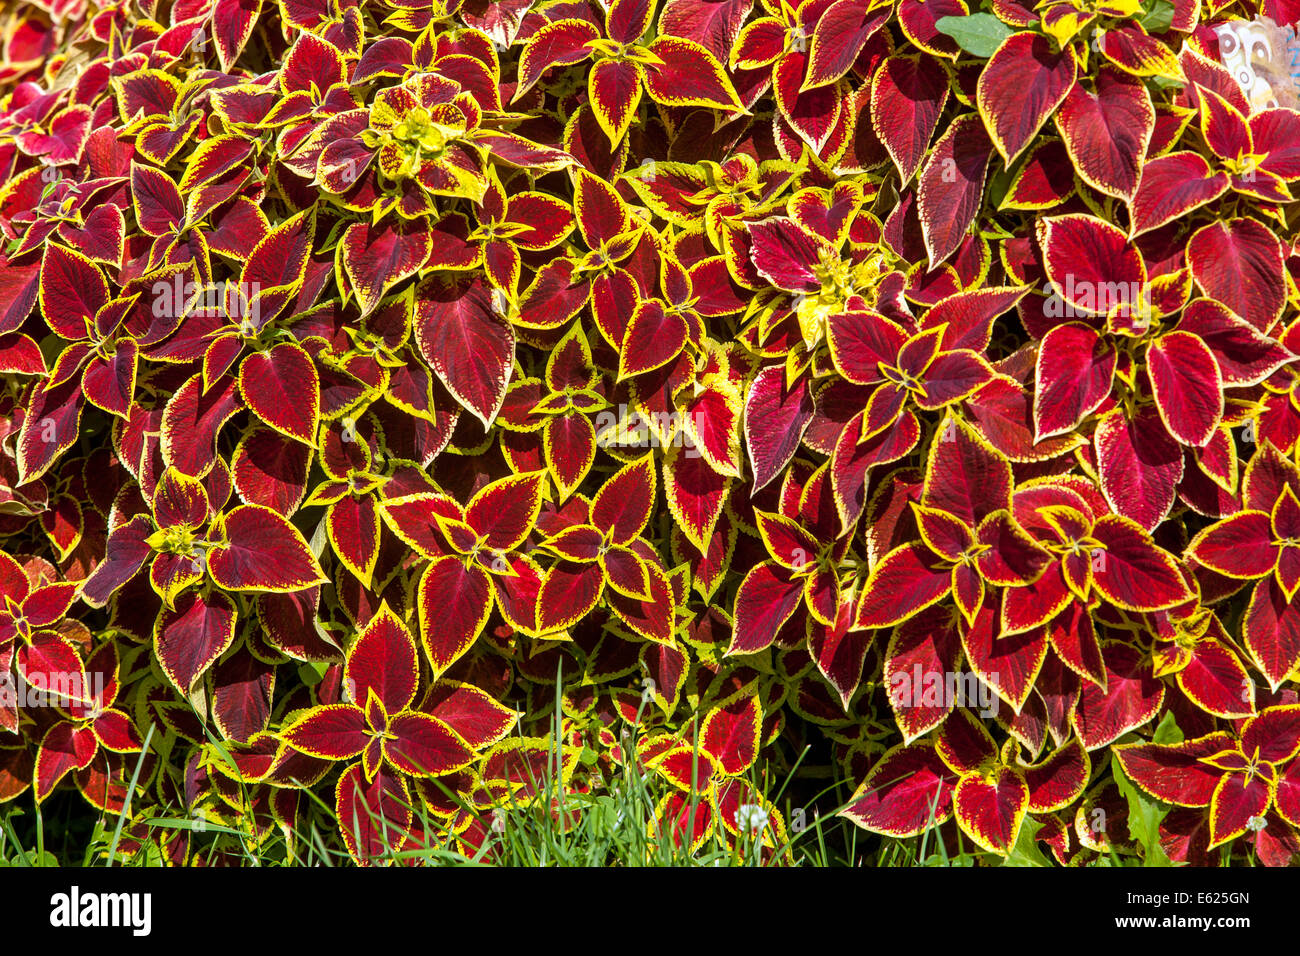 Coleus annual stock photos coleus annual stock images alamy colorful flower bed of annual flowers coleus blumel wizard scarlet stock image izmirmasajfo